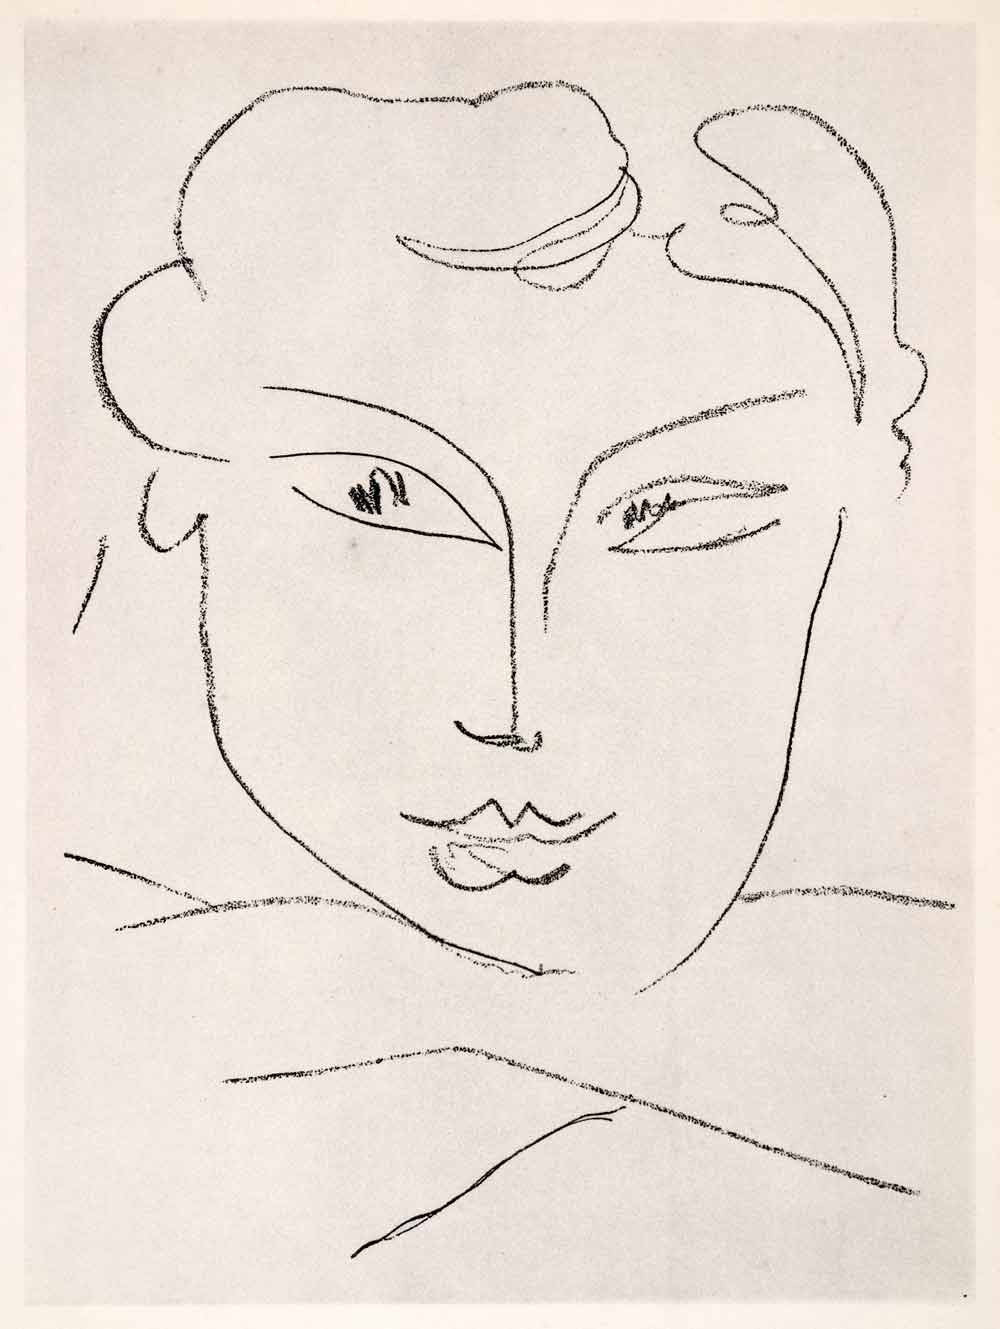 1969 photolithograph matisse girls head face portrait pencil sketch modern art period paper